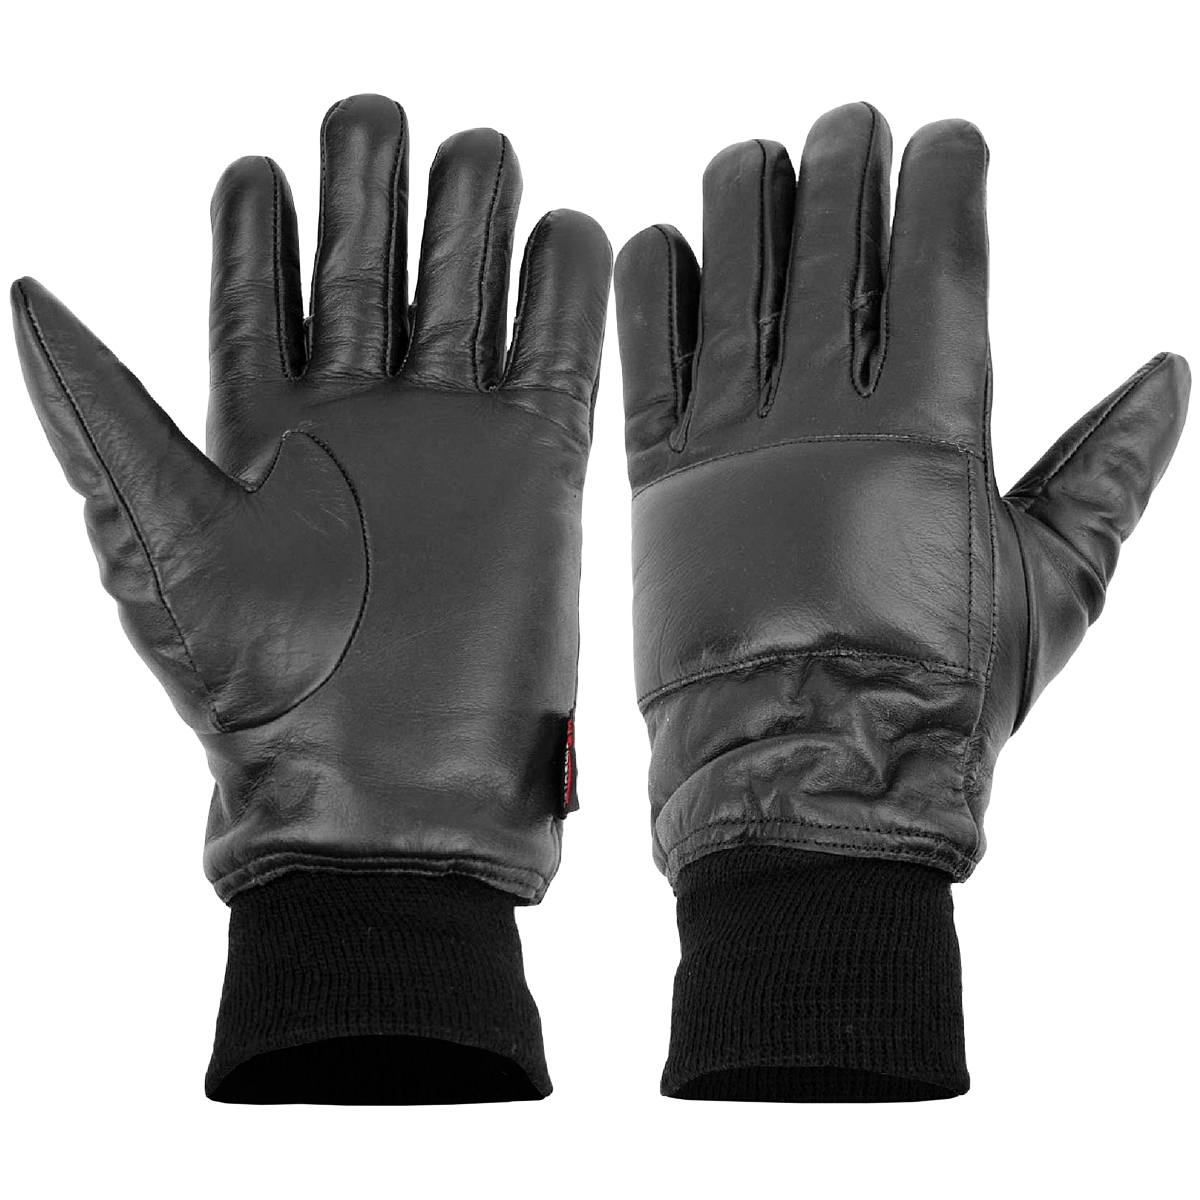 HIGHLANDER TACTICAL MENS NI ARMY GLOVES WARM PADDED LEATHER POLICE GLOVE BLACK